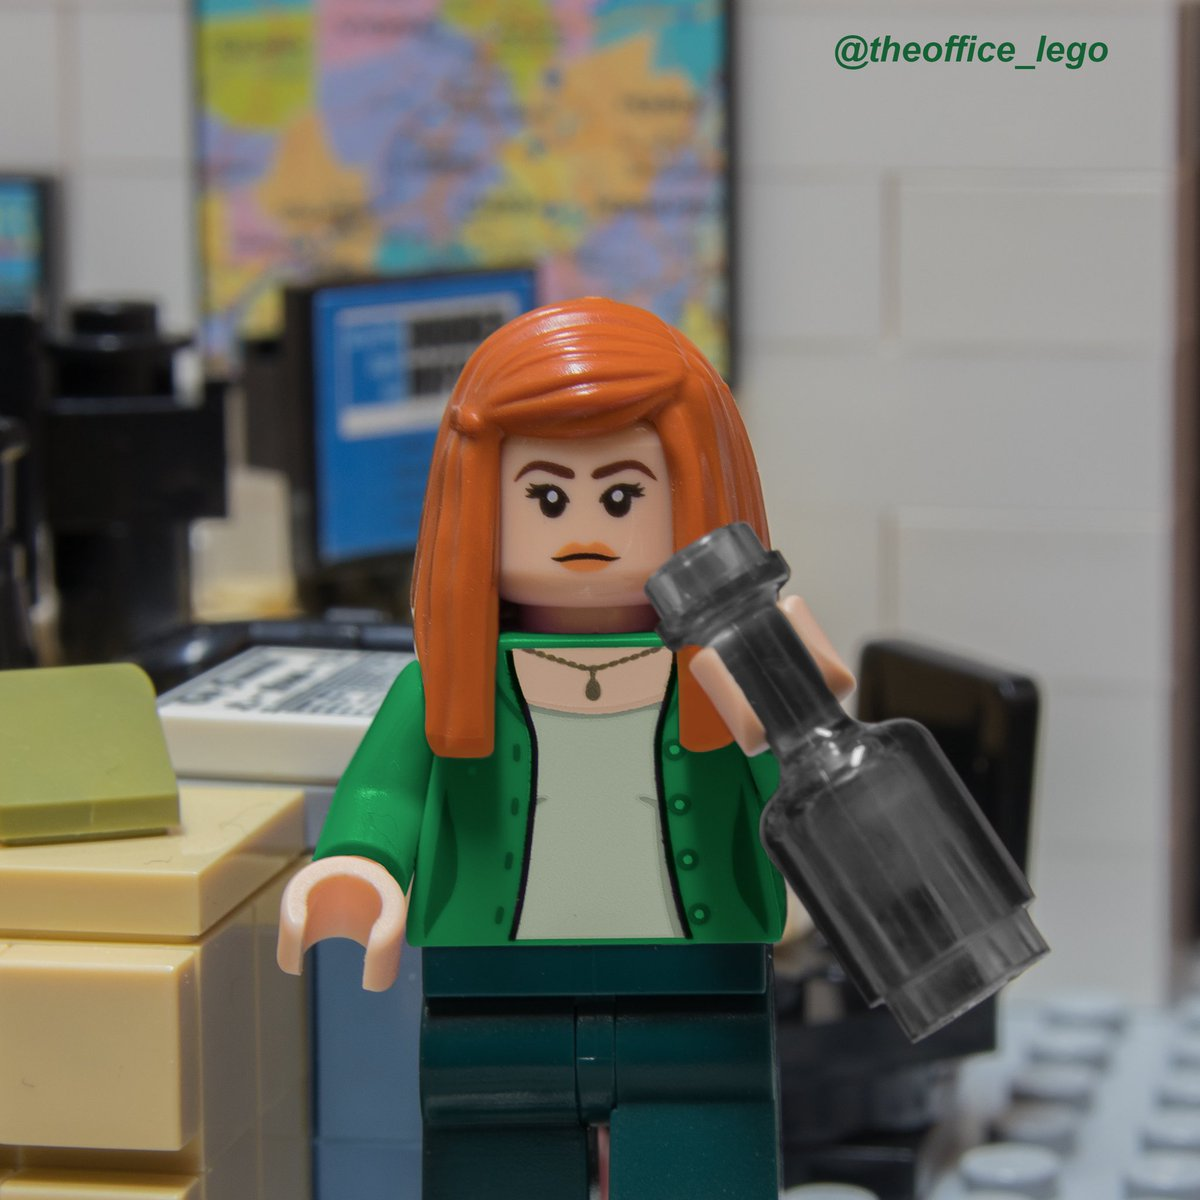 Happy St. Patrick's Day!!   Don't do anything LEGO Meredith wouldn't do   @KateFlannery<br>http://pic.twitter.com/7bvxaofMPv